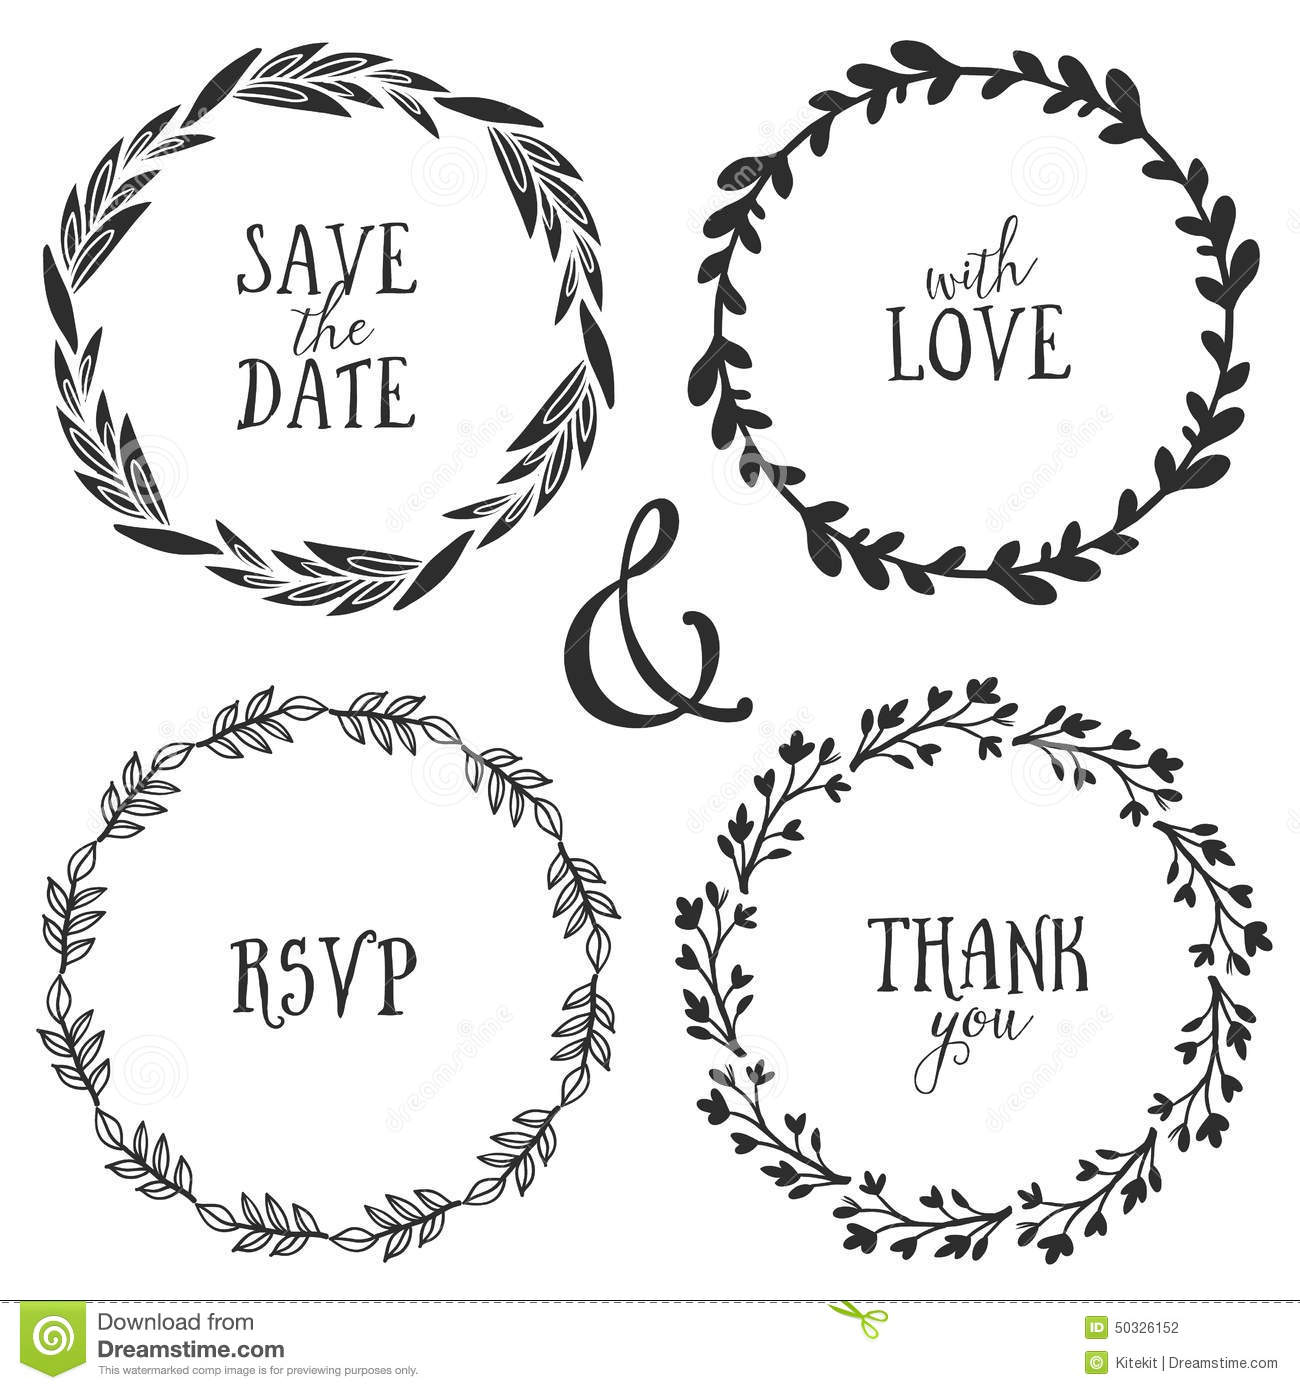 Line clipart rustic #8 Rustic clipart drawings clipart